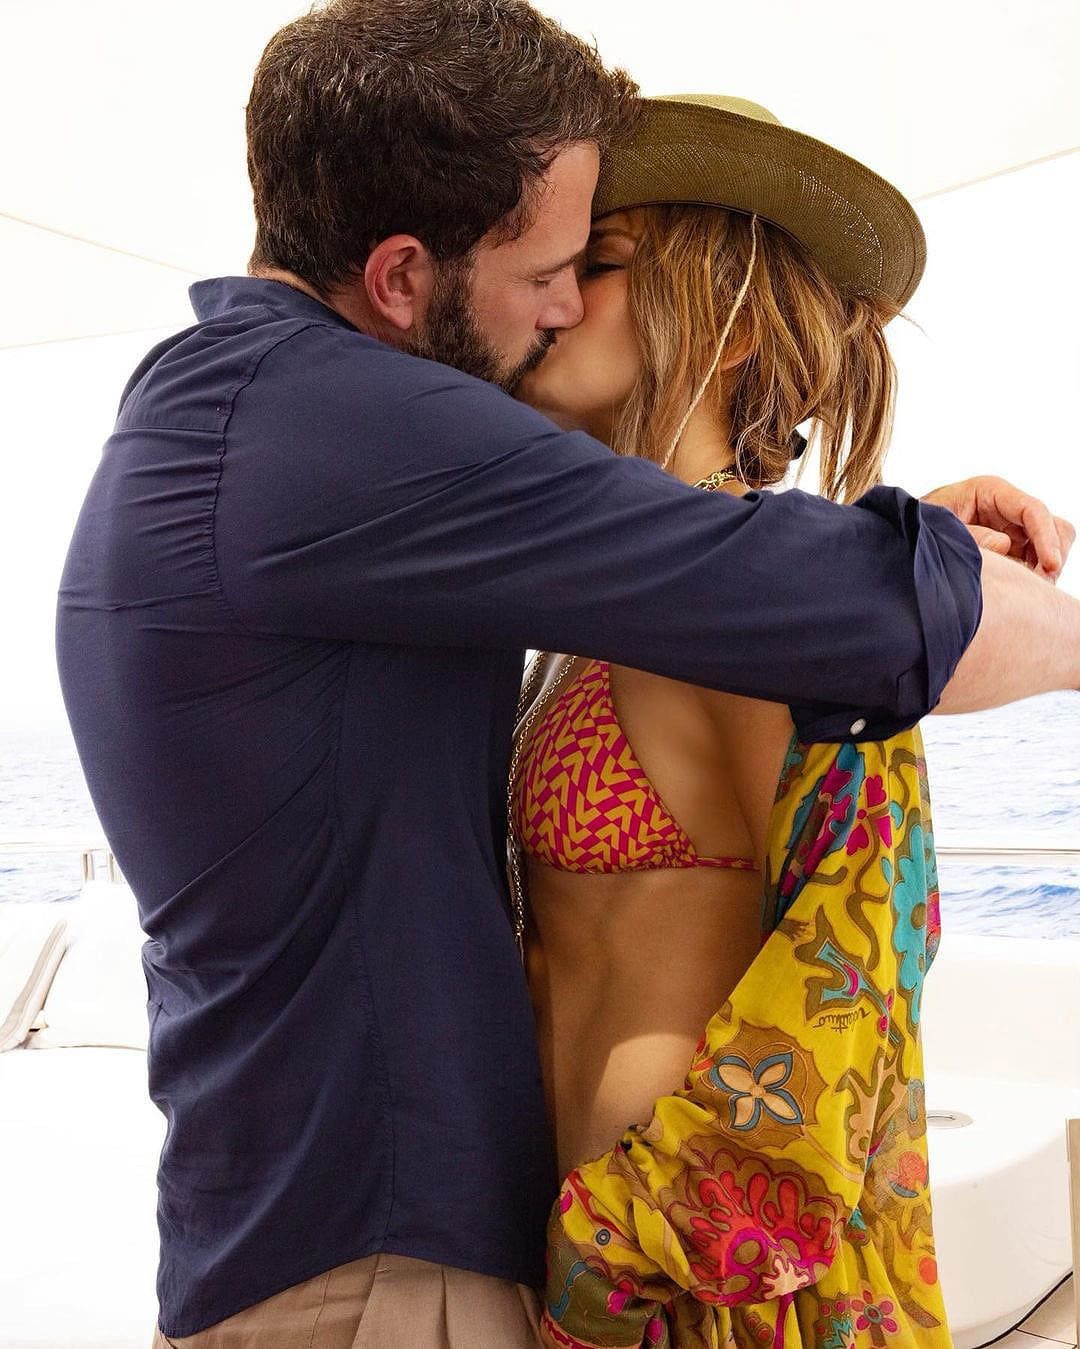 Ben Affleck and Jennifer Lopez share a kiss while on the luxury Valerie yacht in France on July 24, 2021